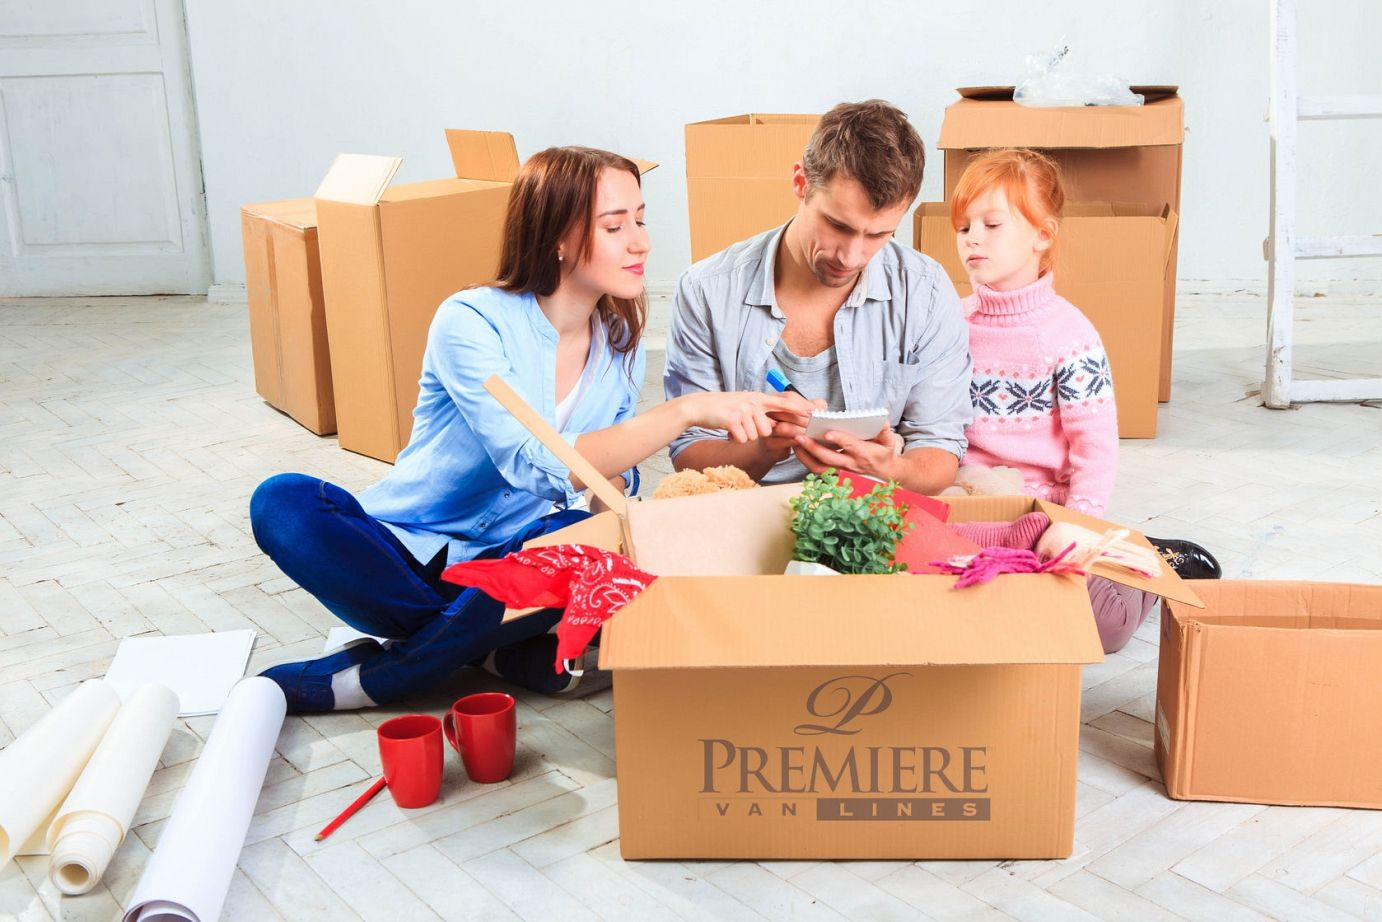 Here's 5 tips to make your #family #relocation more enjoyable for everyone. #moving